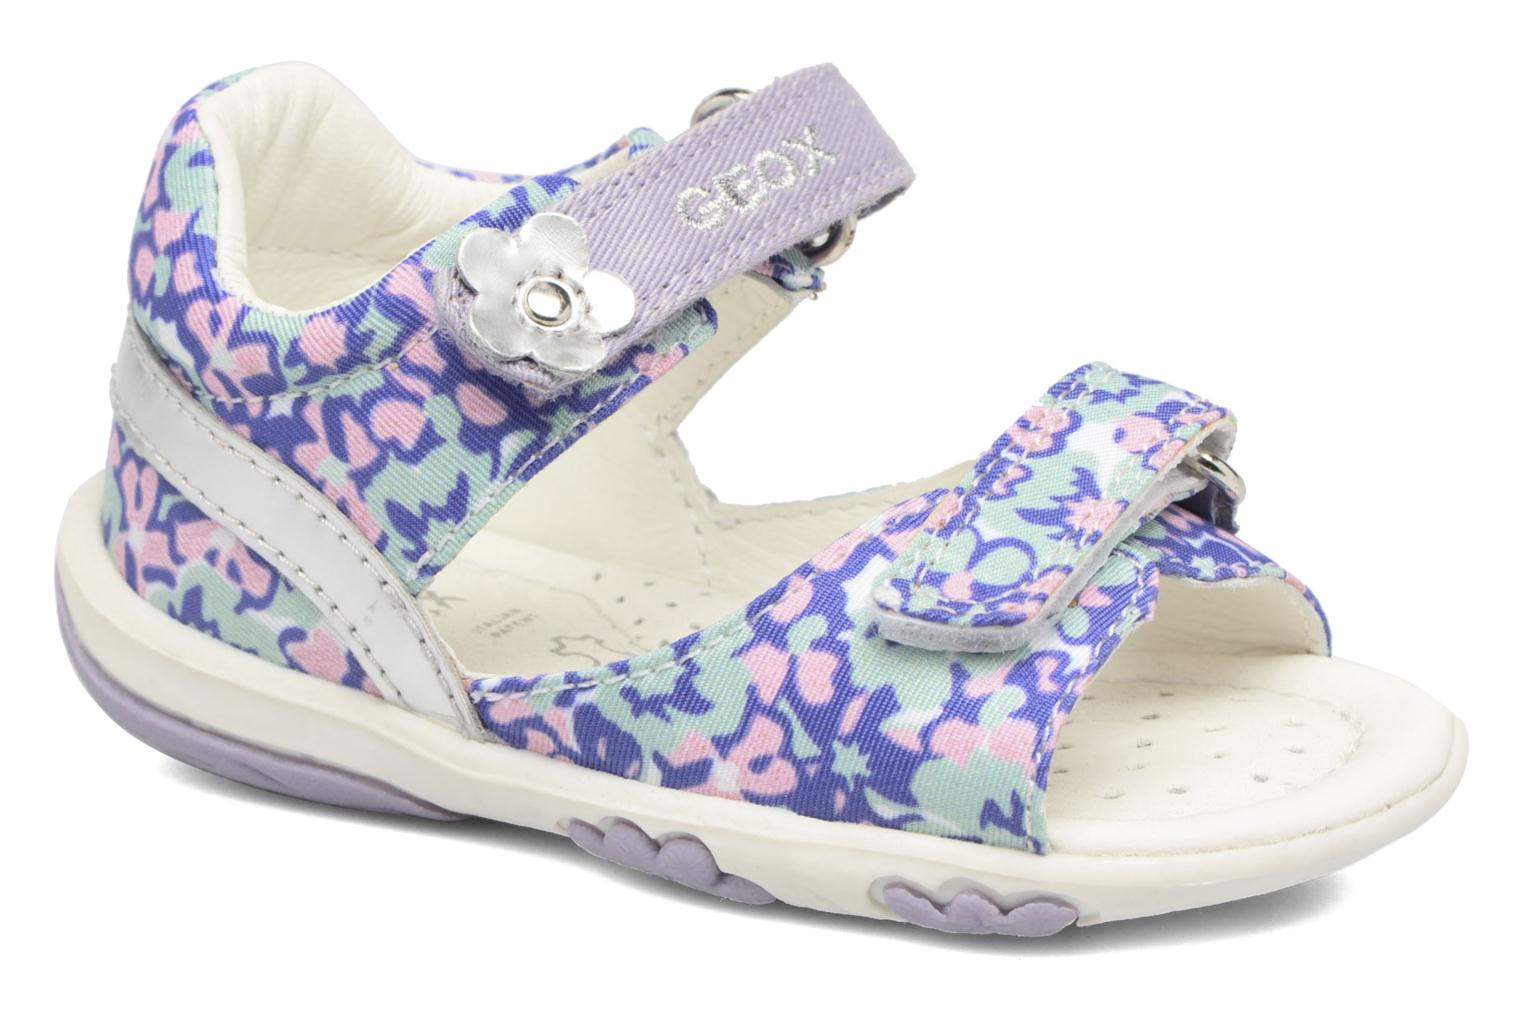 B SANDAL NICELY A by Geox